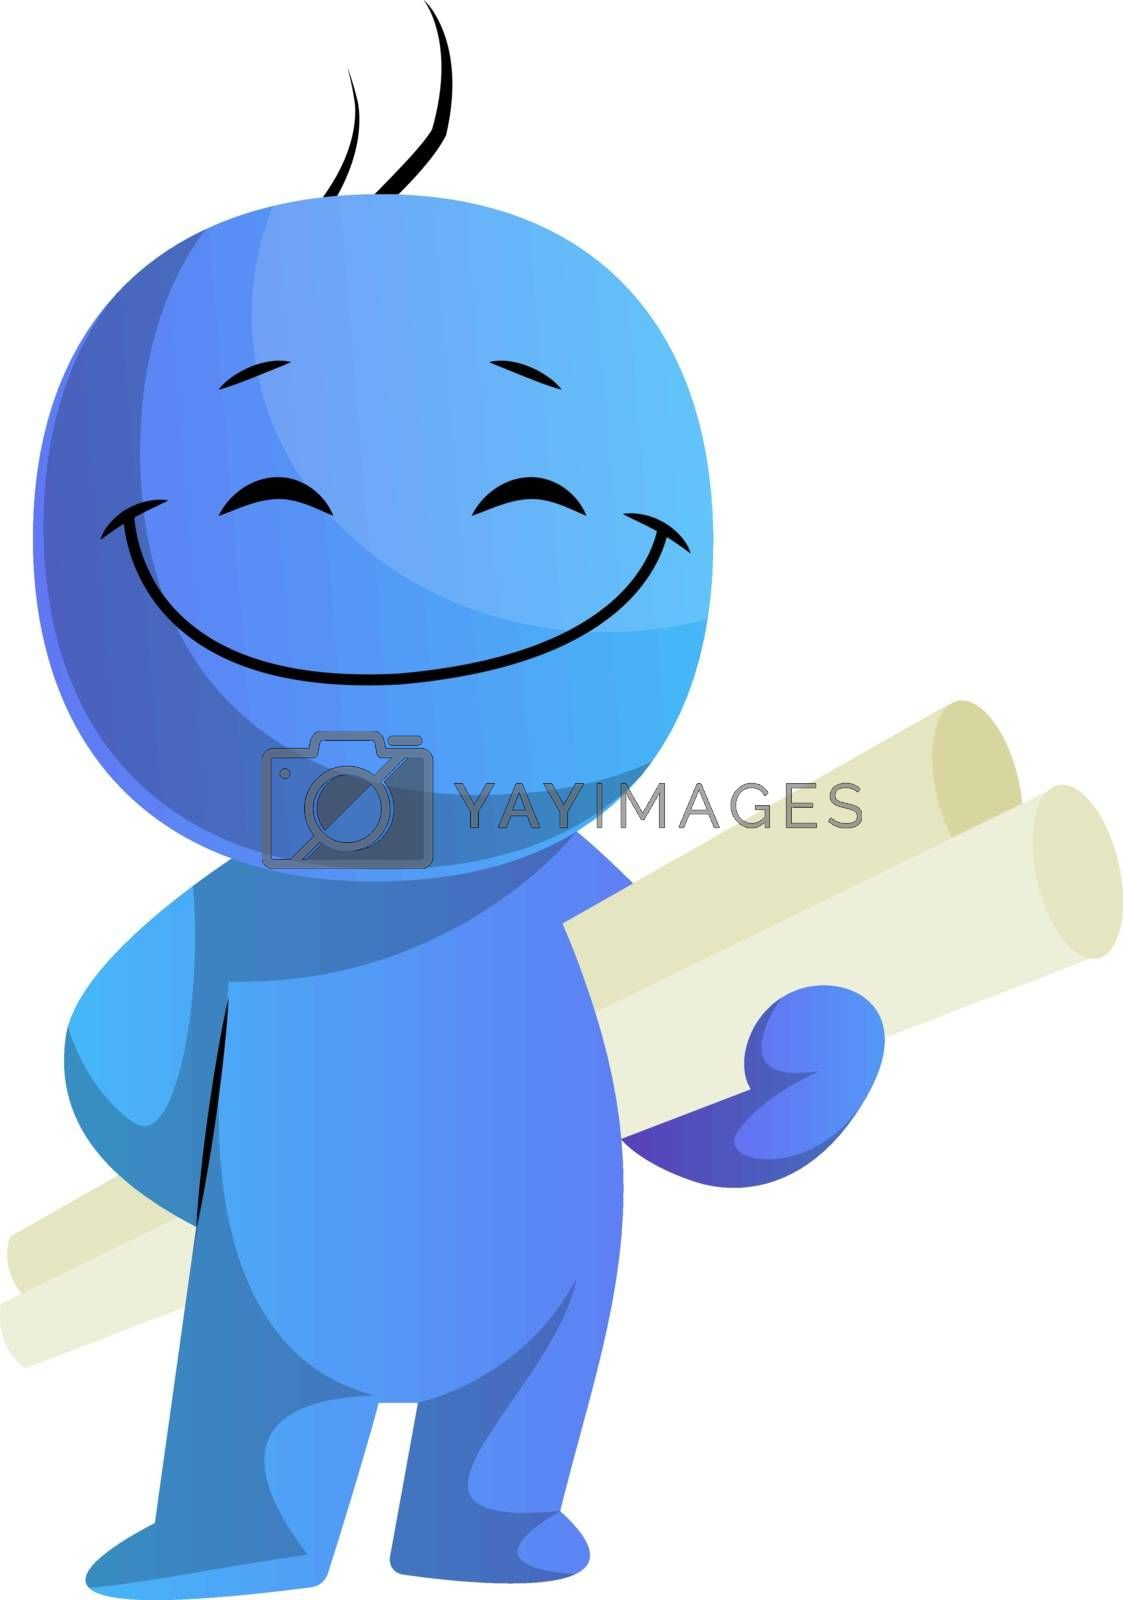 Royalty free image of Happy blue caracter with project papers illustration vector on w by Morphart